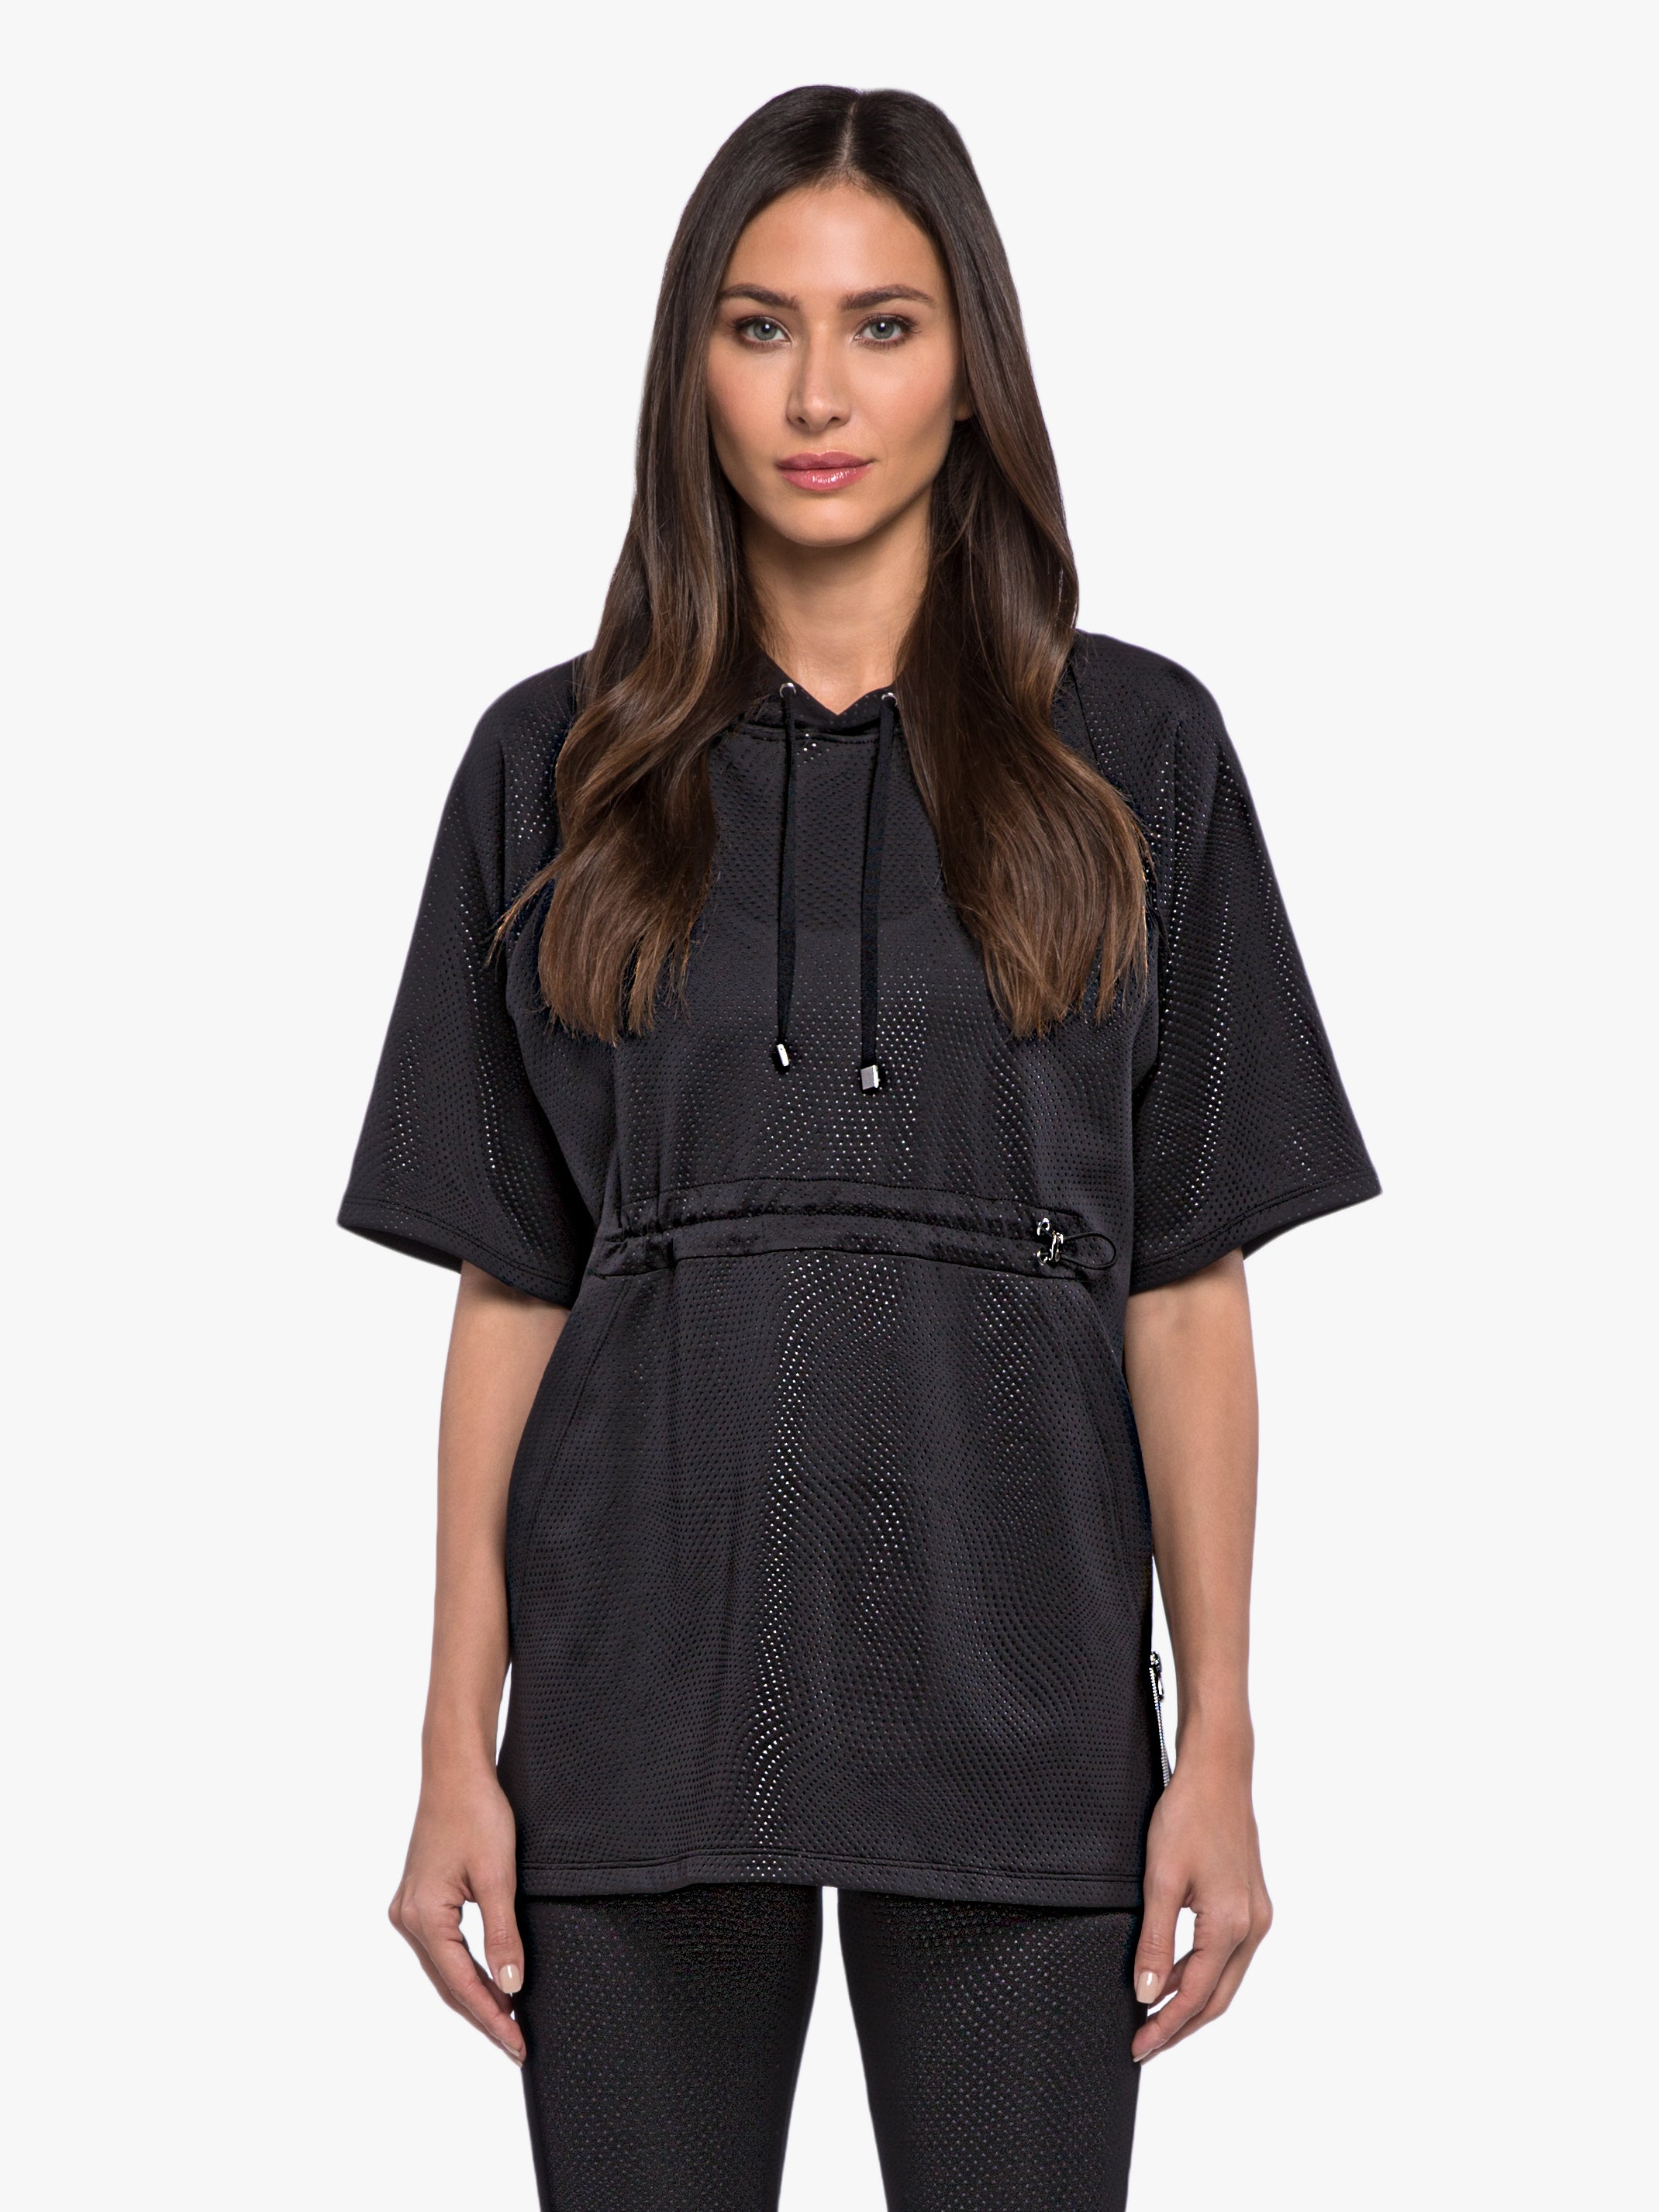 Quincy Etch Tunic - Black